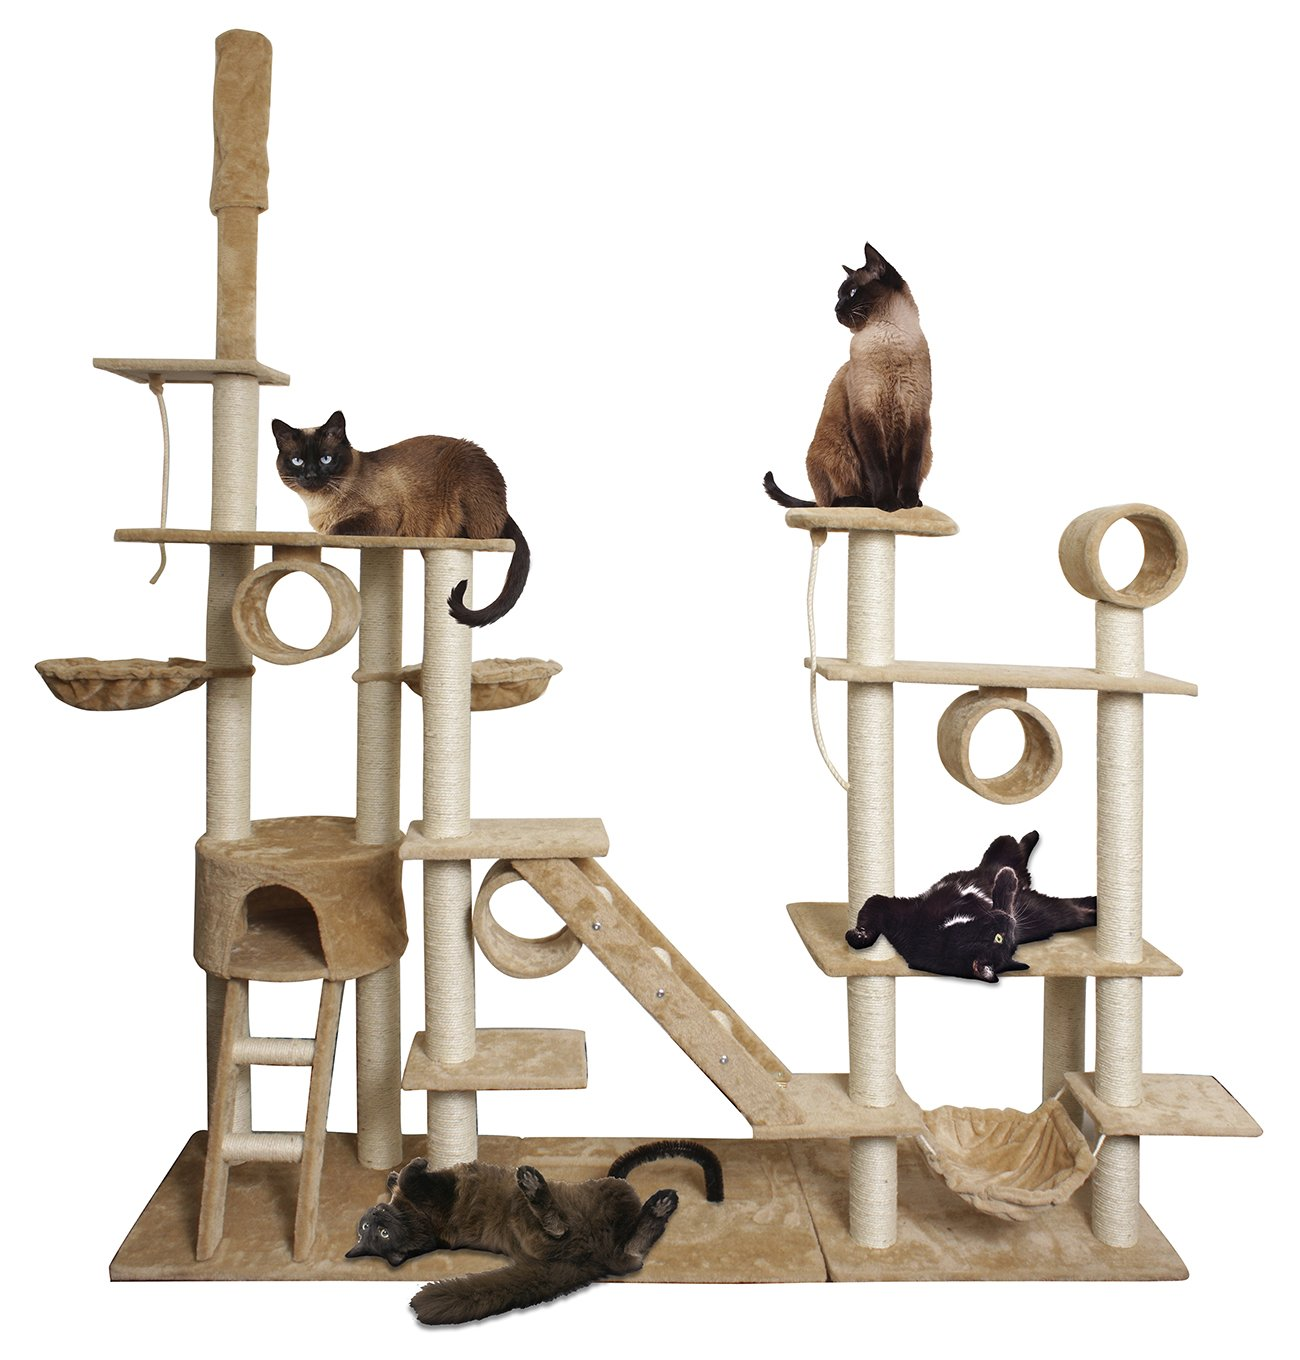 Paws & Pals 76''x20''x96'' Cat Tree House w/Scartching Post Towers, Hammock Bed, Pet Toy Balls And Ropes, Multi Level Playground, 10 Level Condo w/Tunnels And Stairs - Tan And White